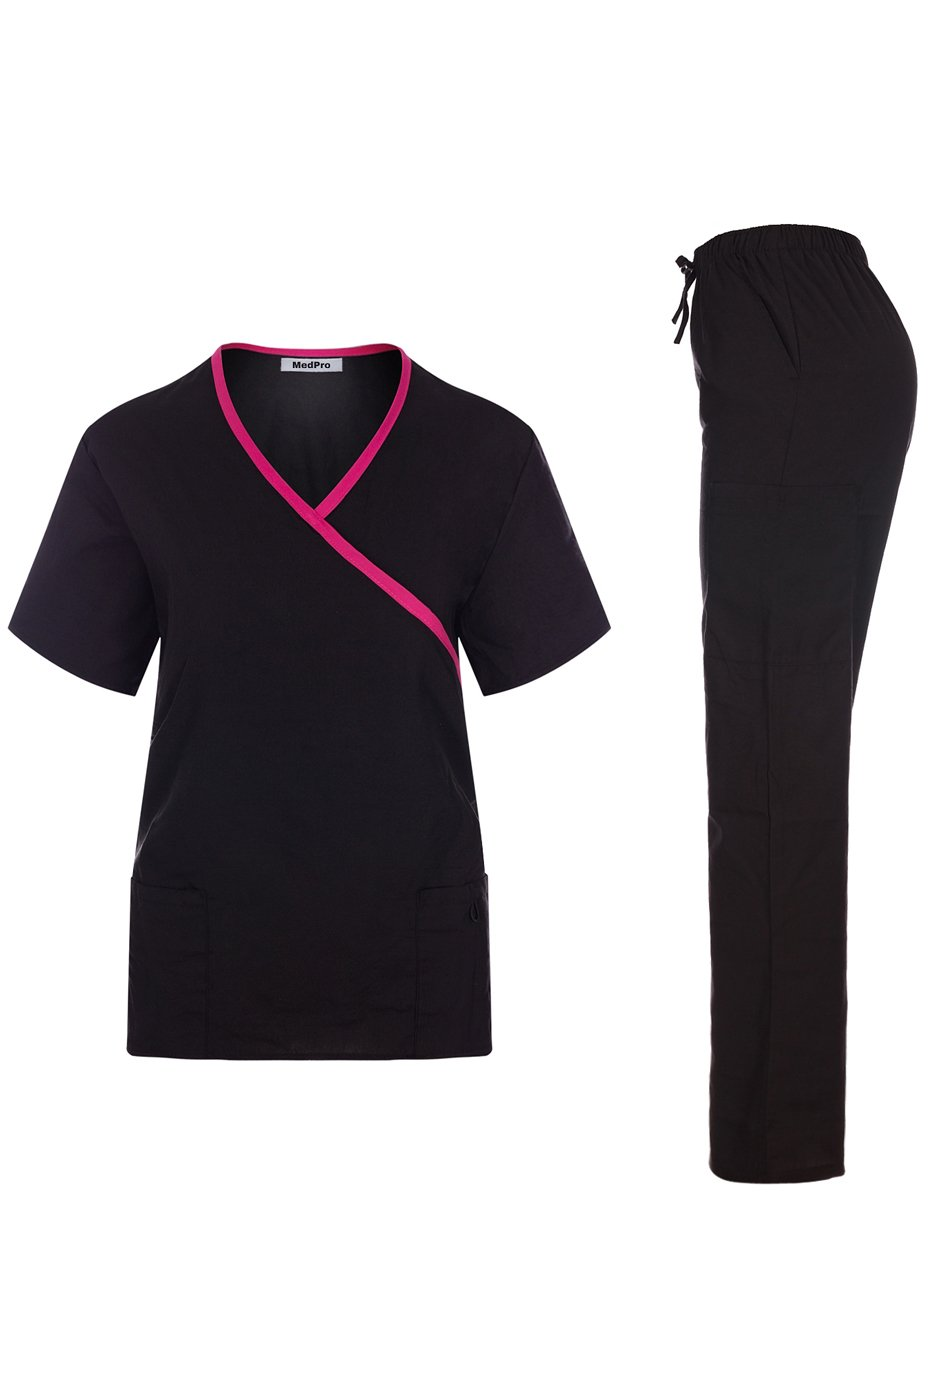 MedPro Women's Contrast Trimmed Solid Medical Scrub Set Mock Wrap Top and Cargo Pants Black & Pink XL (GT-756)